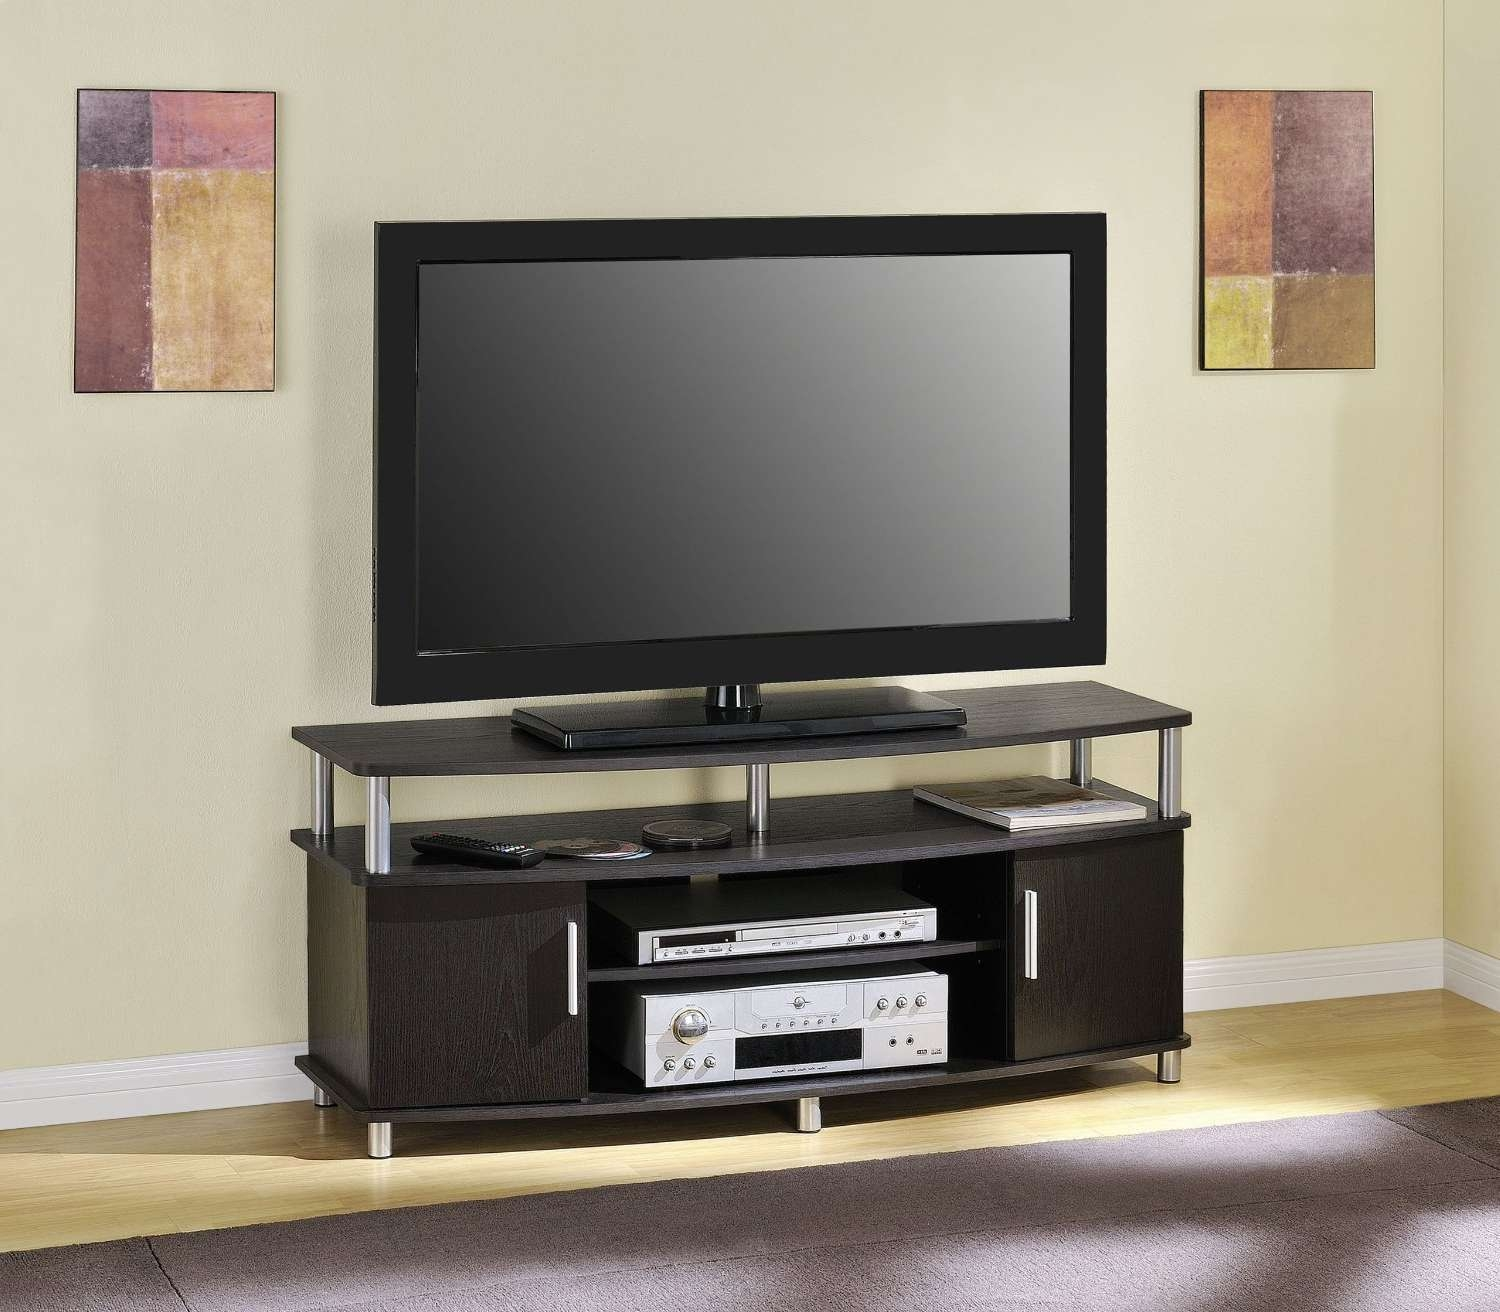 Tv Stand : 37 Rare Tv Stand For Flat Screen Tv Images Inspirations Inside Tv Stands For Large Tvs (View 10 of 15)